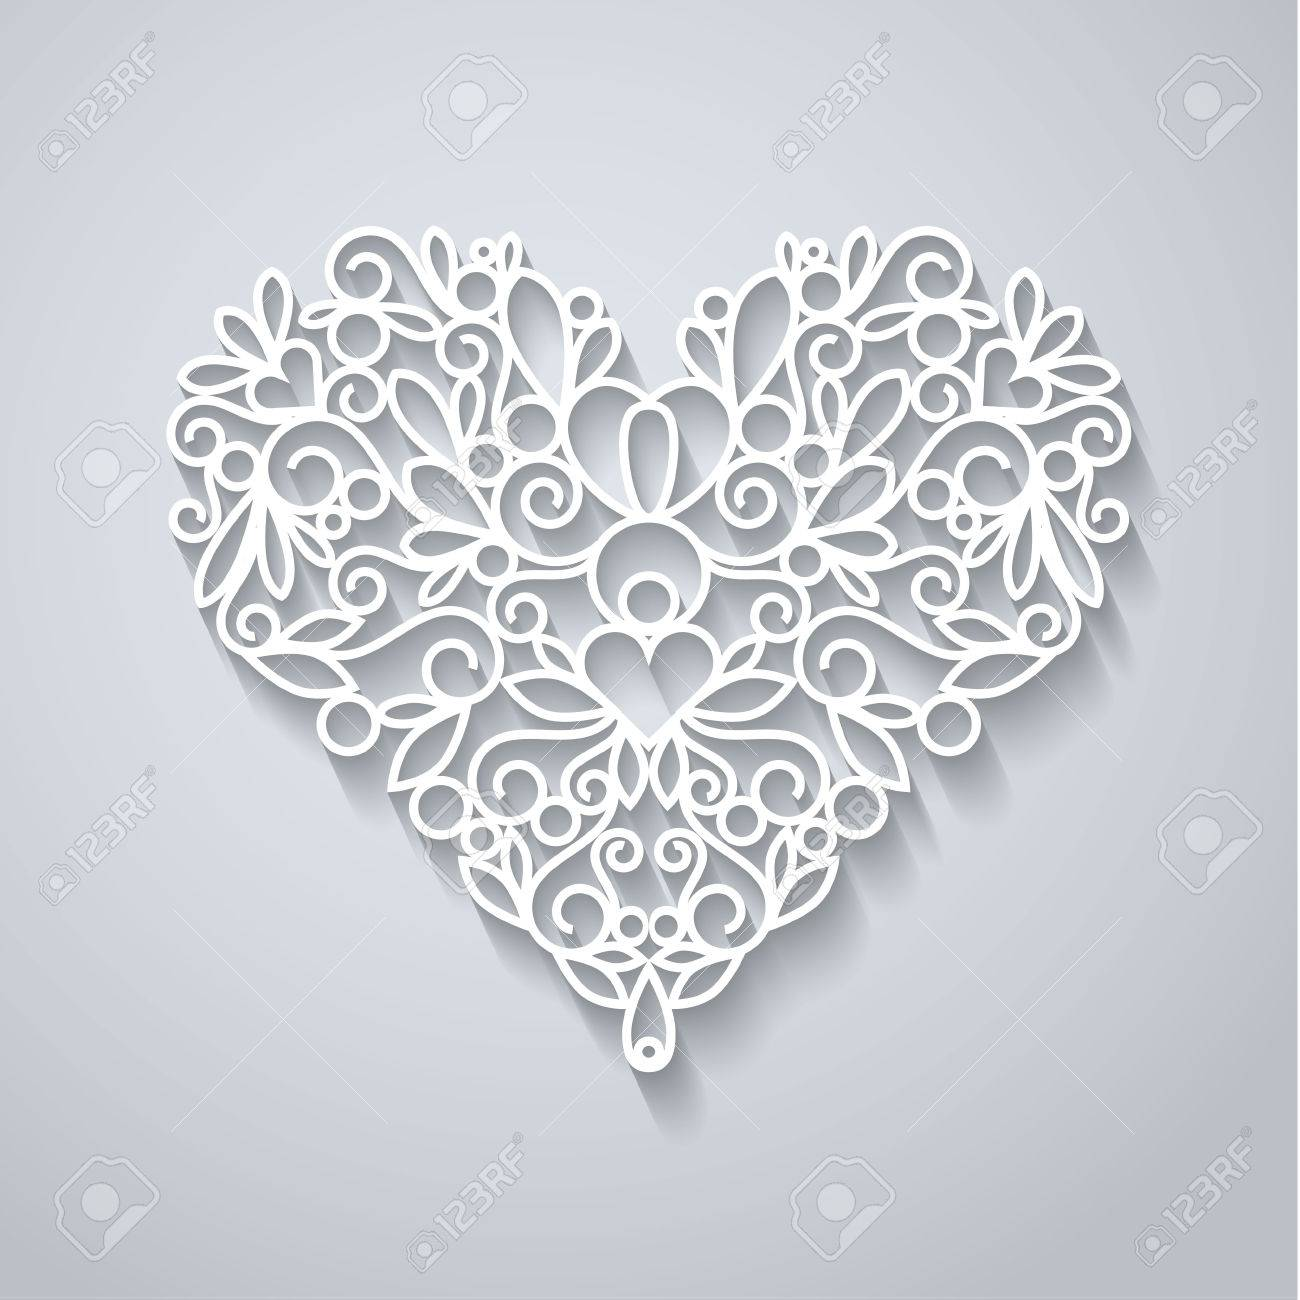 Swirly paper heart with shadow on white, vector illustration - 36860204